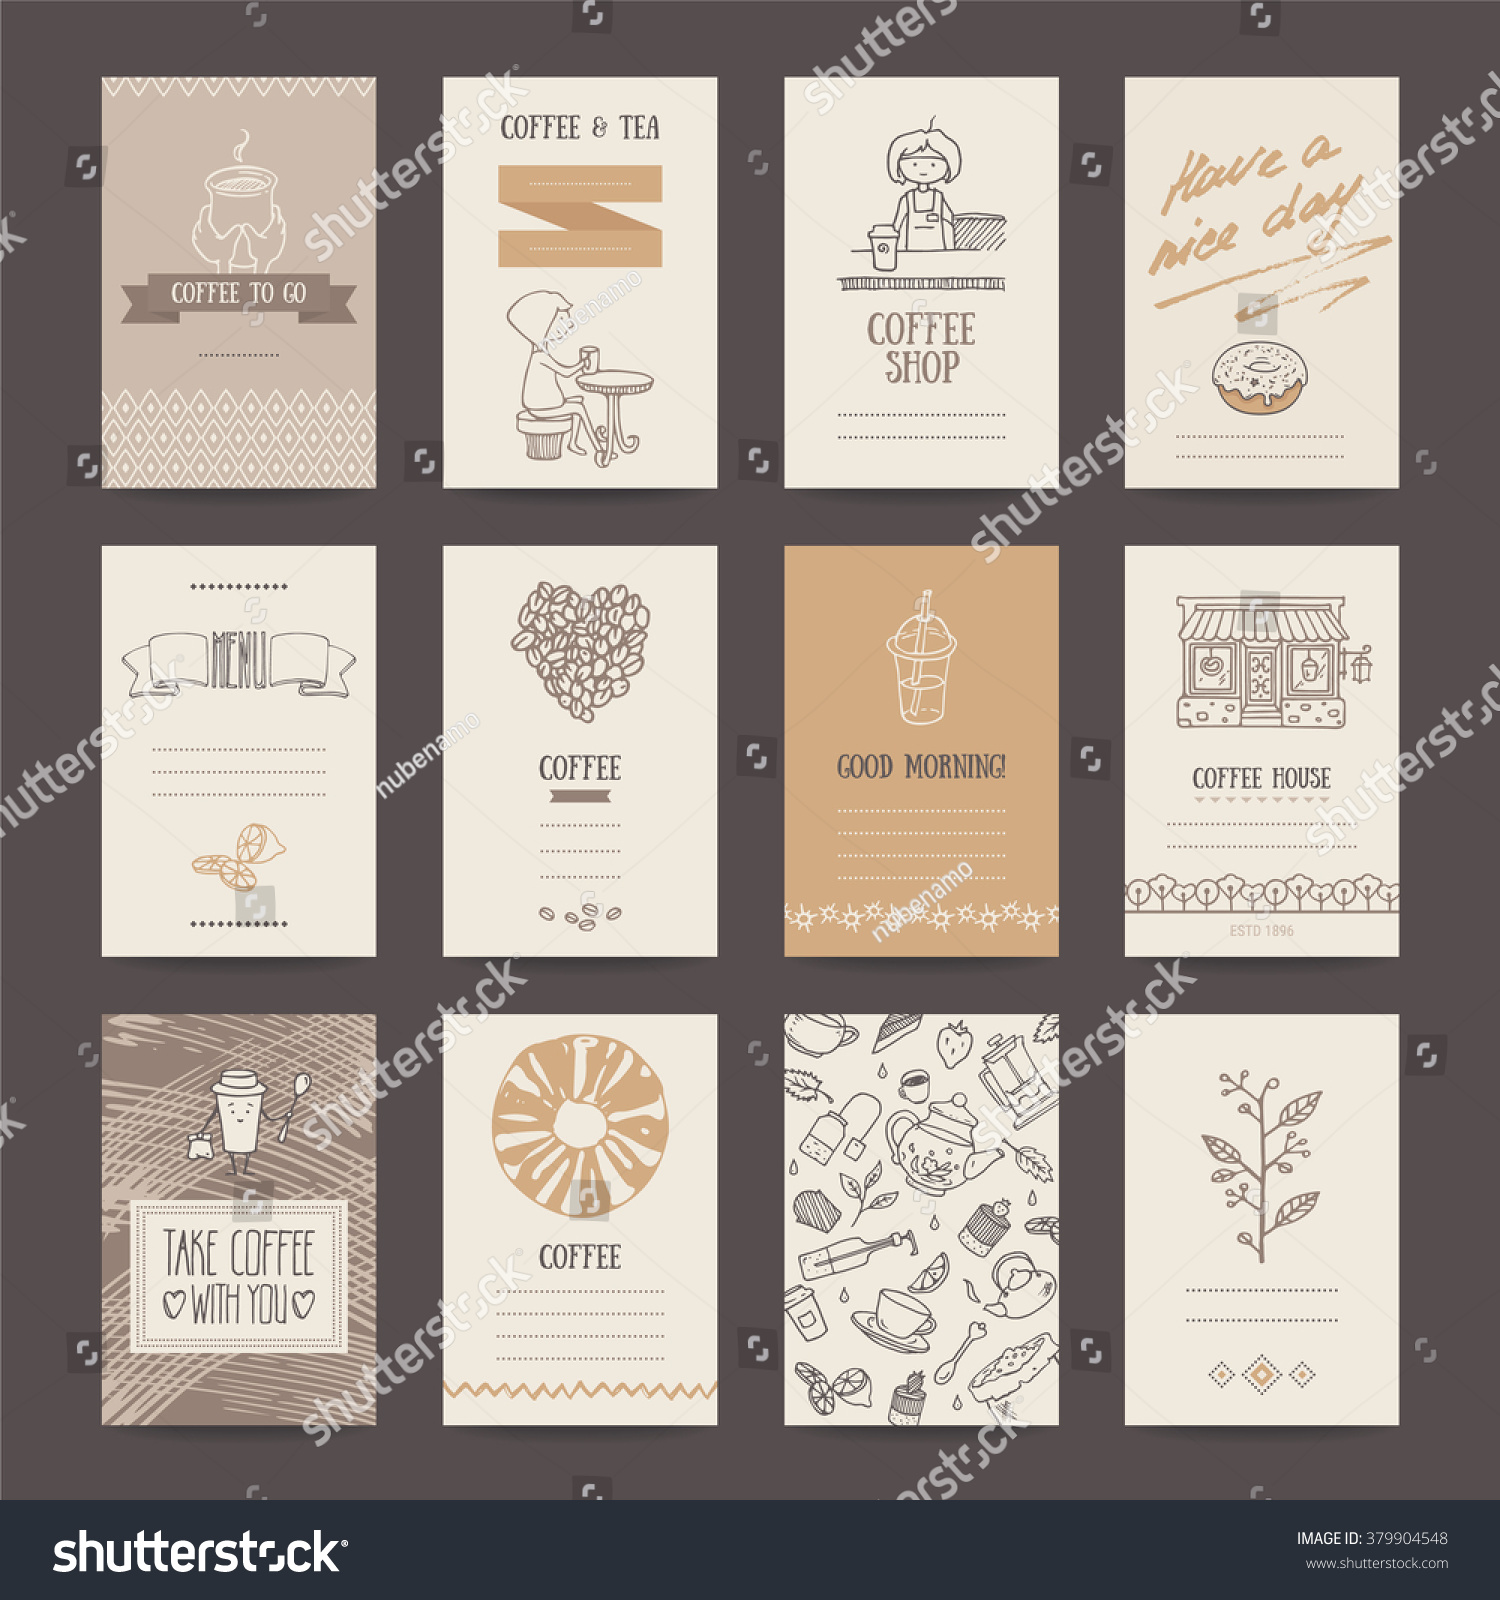 Coffee Shop Invitations Cafe Business Cards Stock Vector 379904548 ...